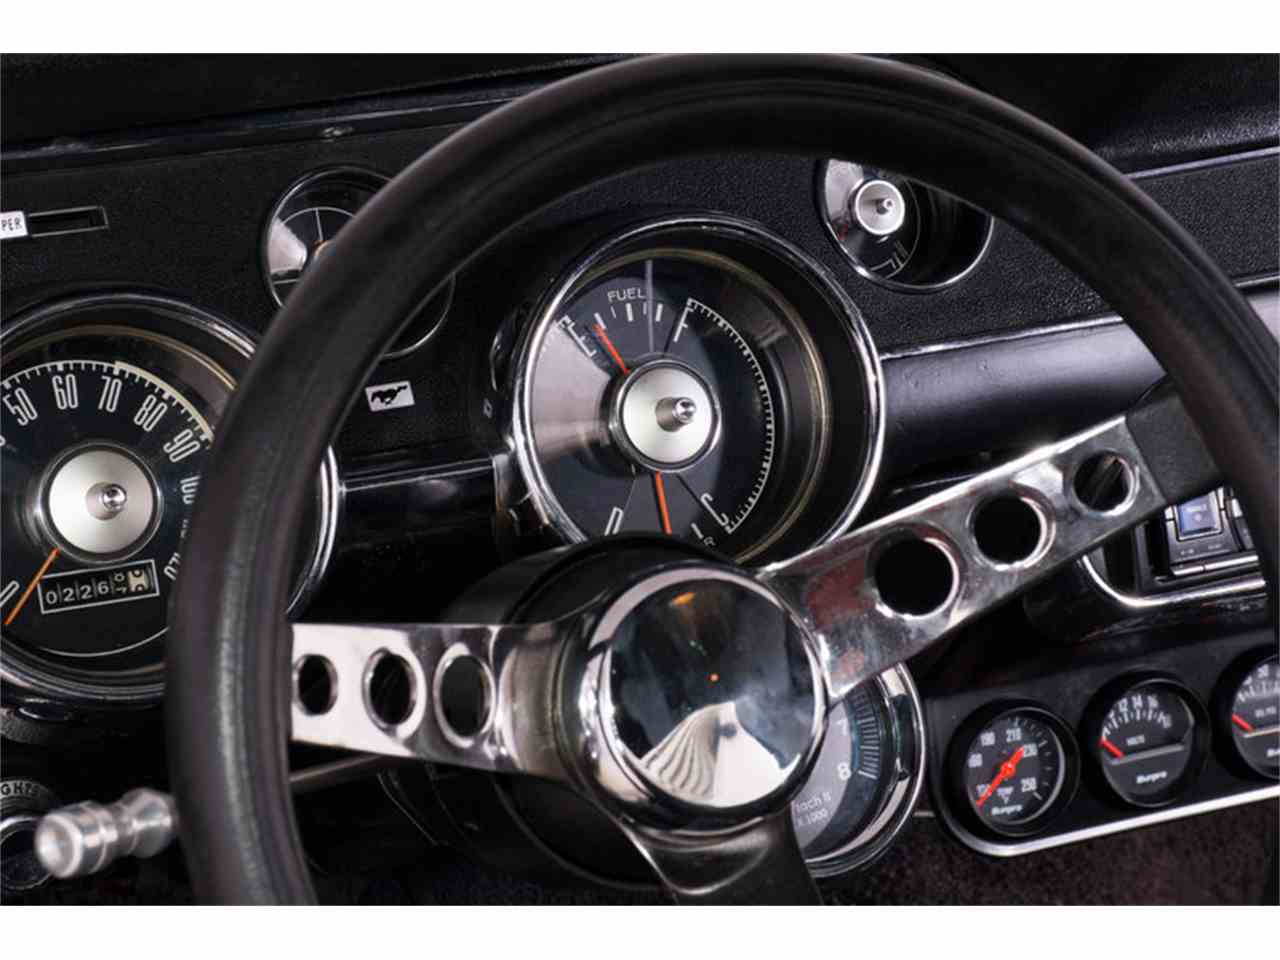 1968 ford mustang for sale classiccars cc 1012844 large picture of 68 mustang lpik sciox Choice Image